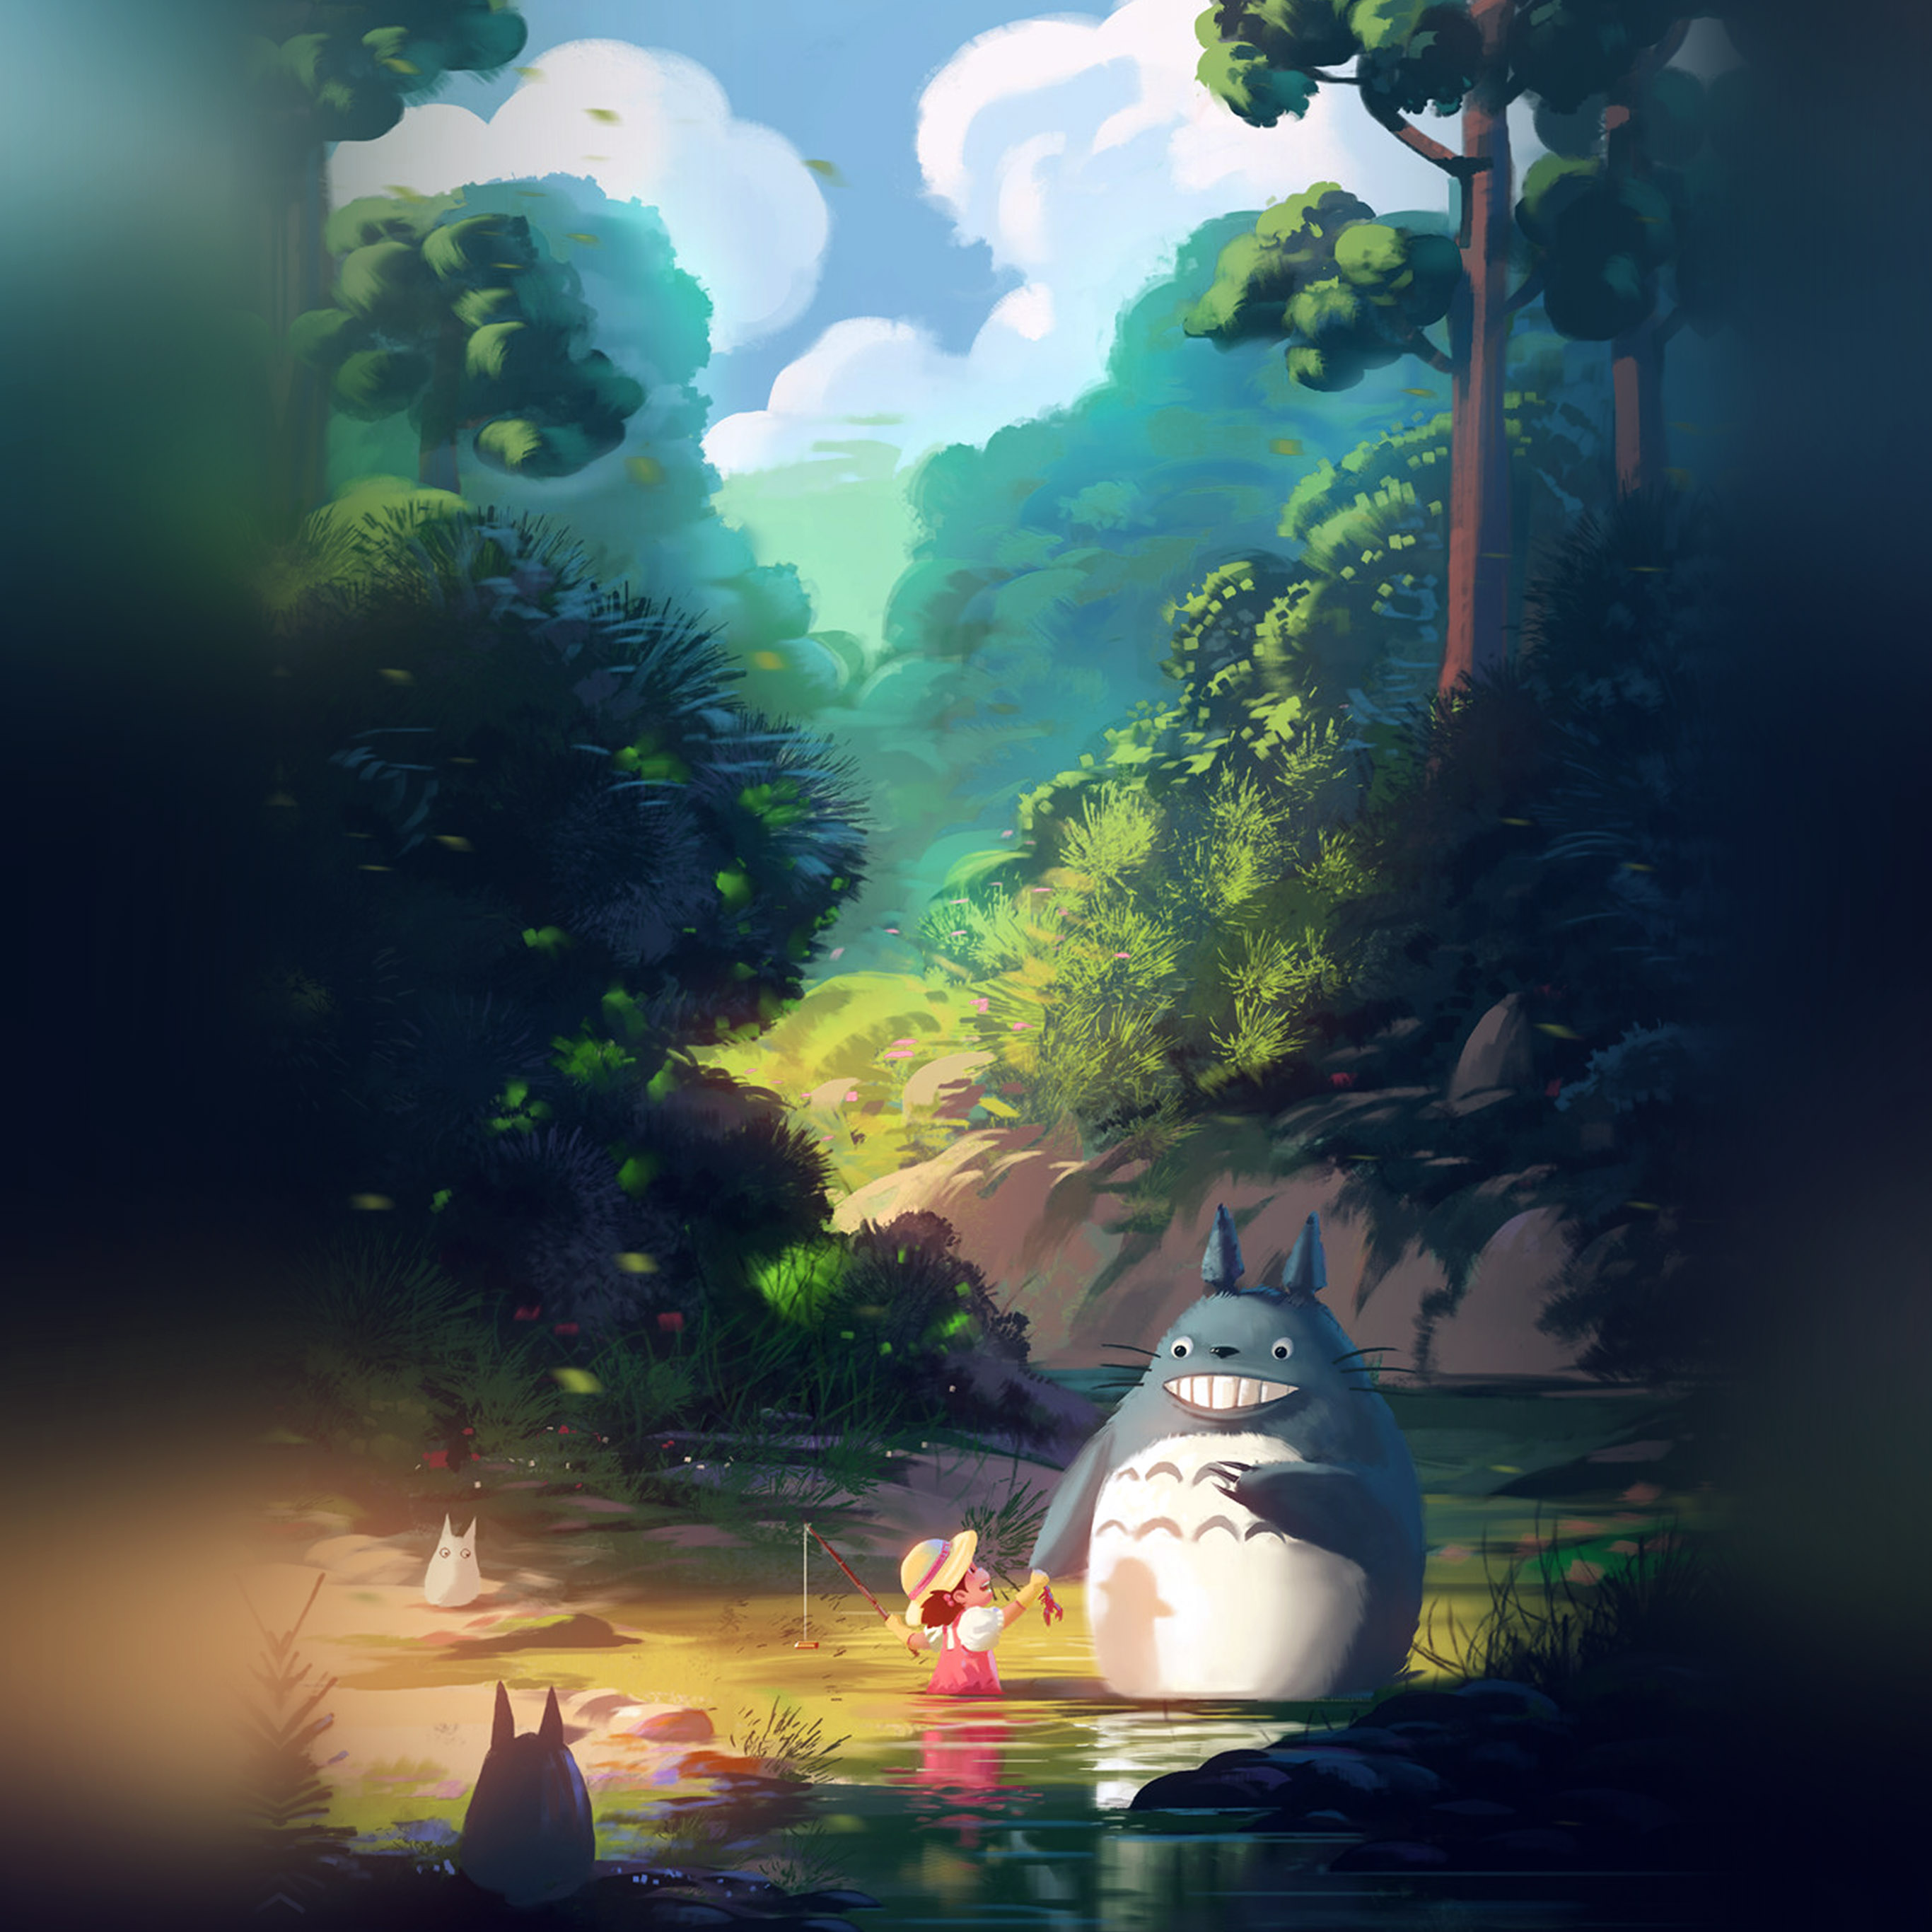 Totoro Iphone X Wallpaper Papers Co Android Wallpaper Av34 Totoro Anime Liang